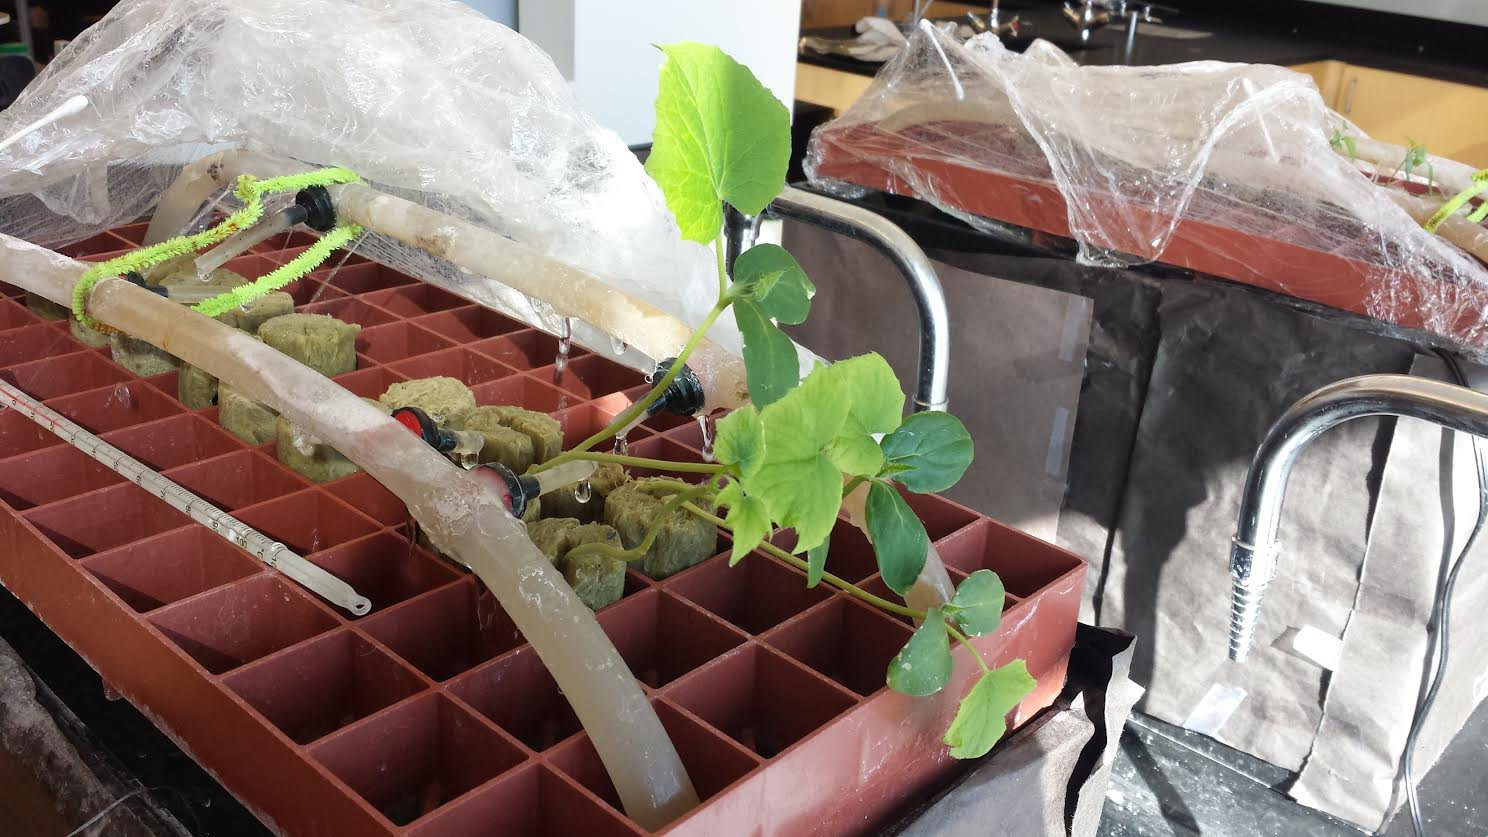 Cucumbers growing in one of our test hydroponic systems. Notice the cucumbers reaching for the light!